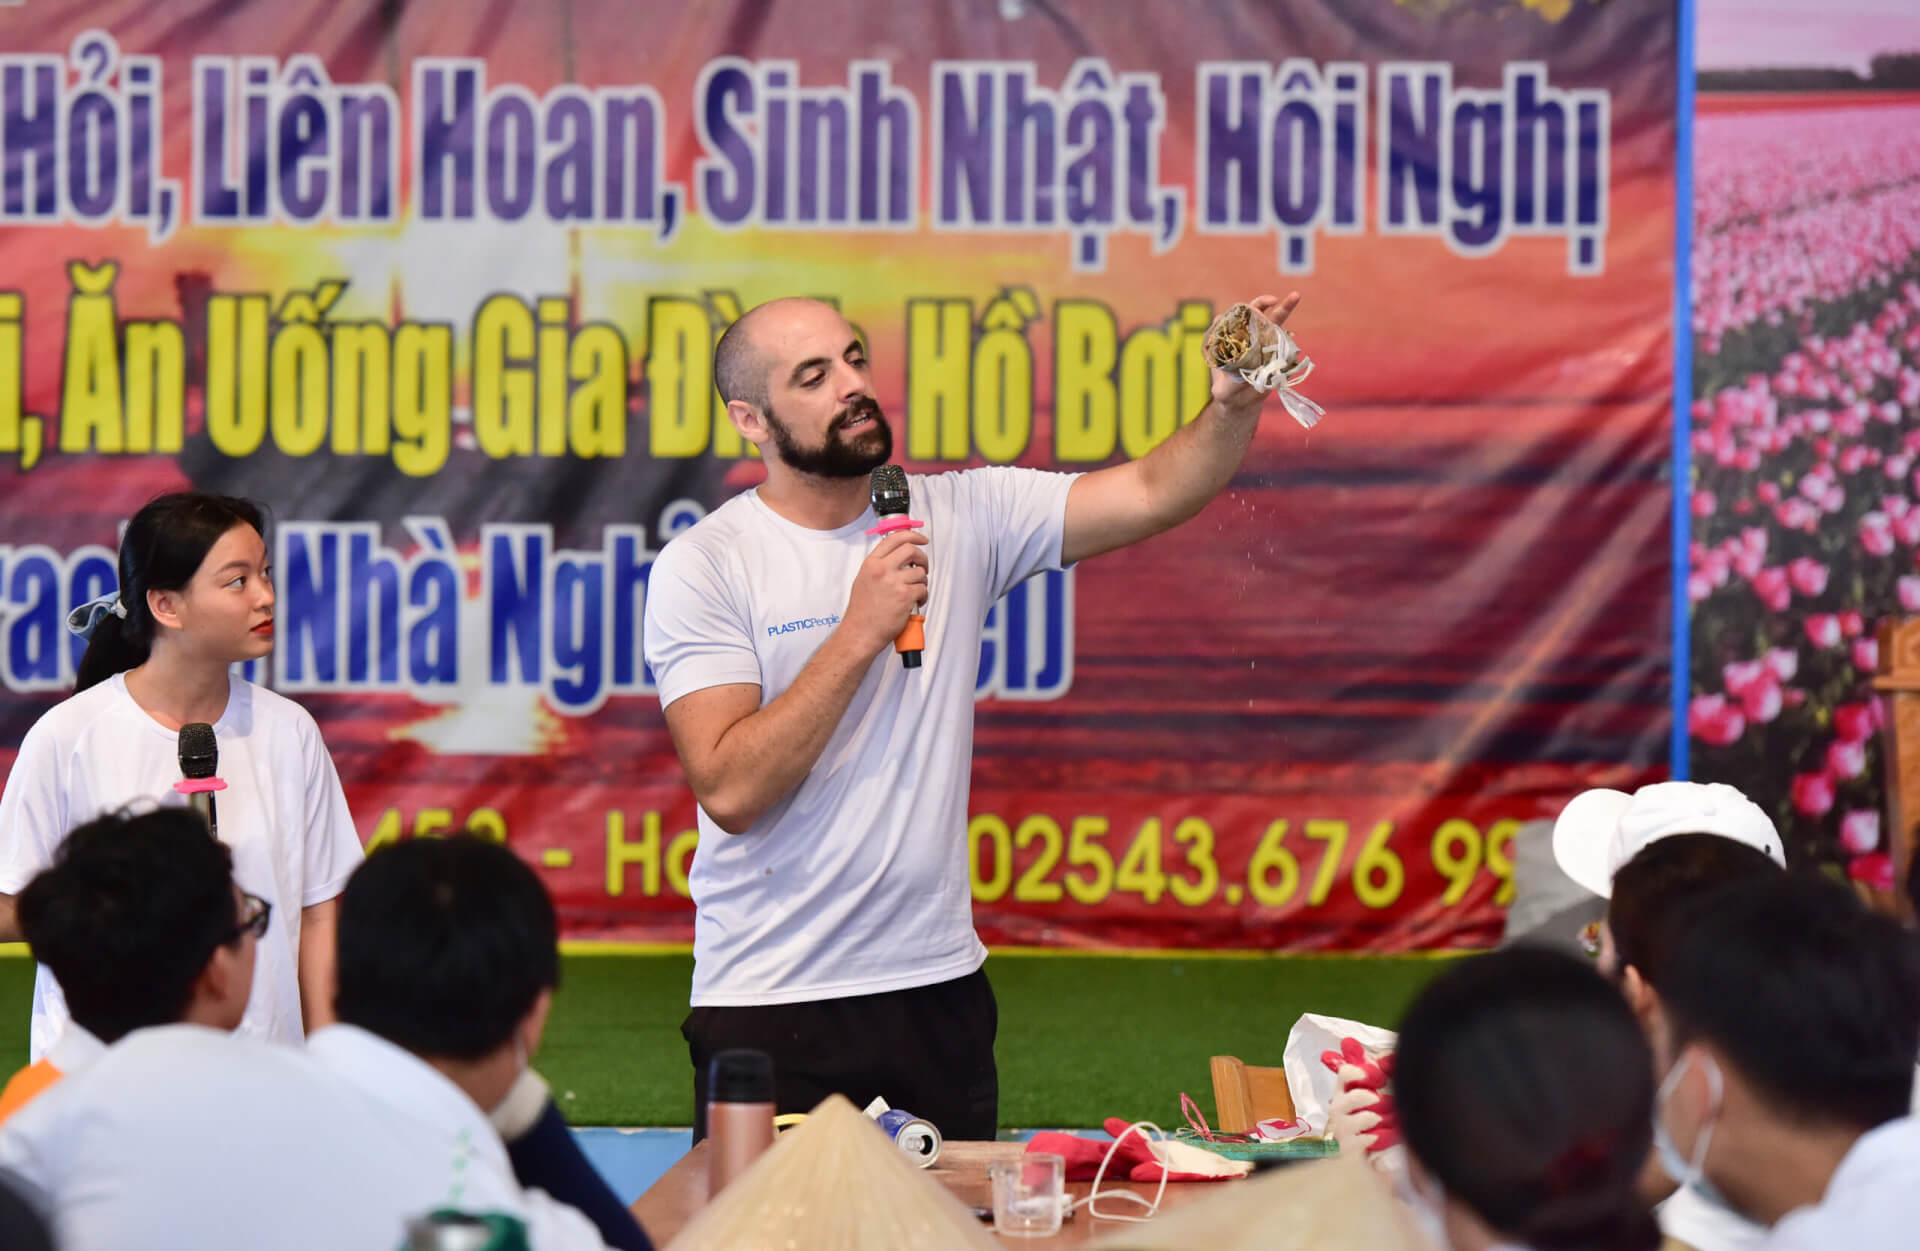 Co-founder of PLASTICPeople, Nano Morante, educating the community on single-use plastics at one network event near Ho Chi Minh in Vietnam